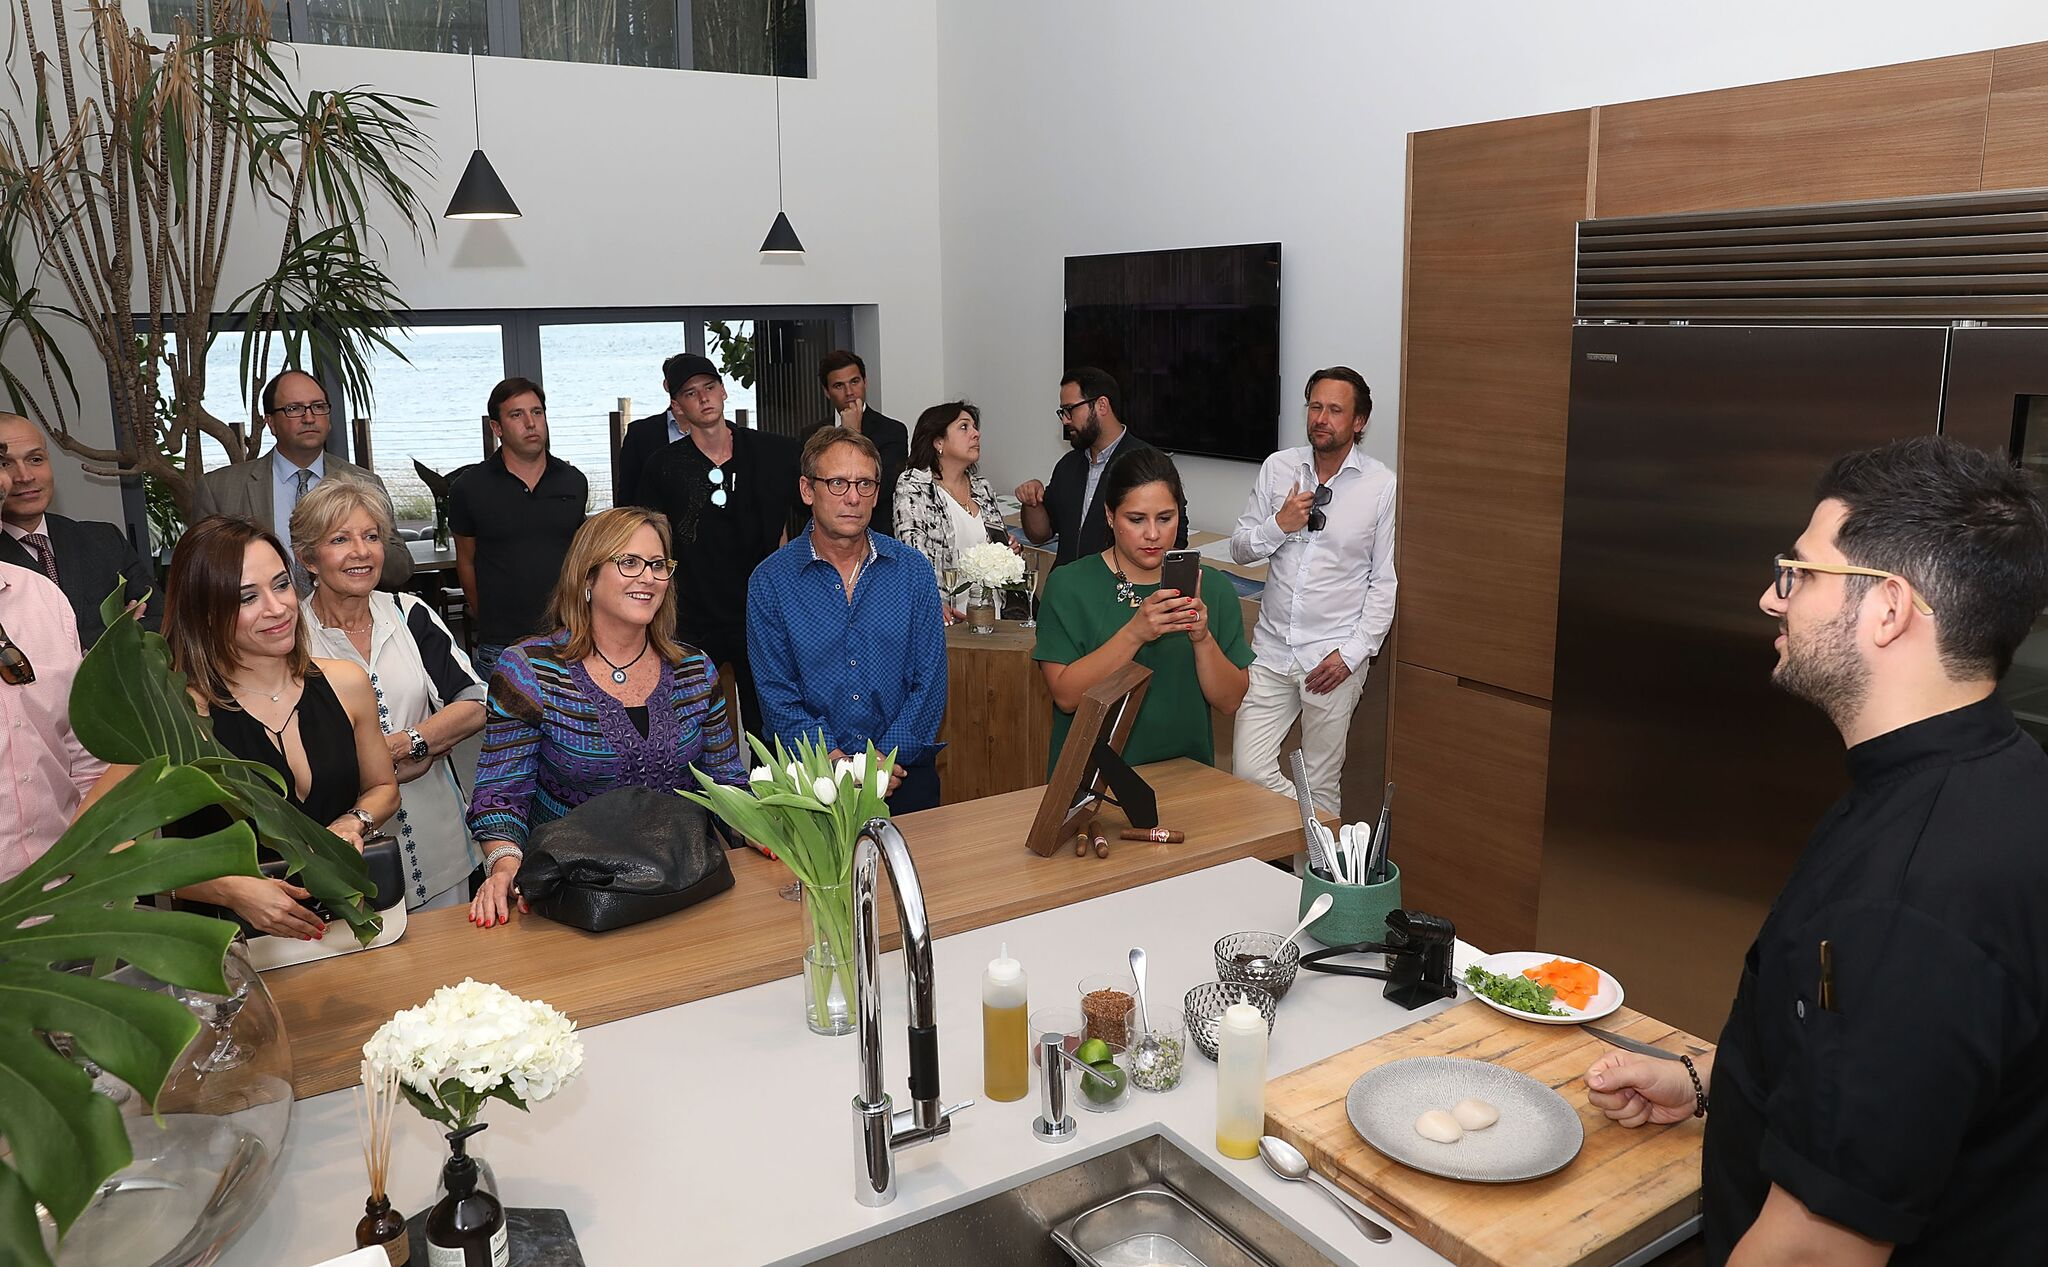 The Fairchild Coconut Grove Unveils Chef-Inspired Kitchens in An Evening With Celebrity Chef Giorgio Rapicavoli